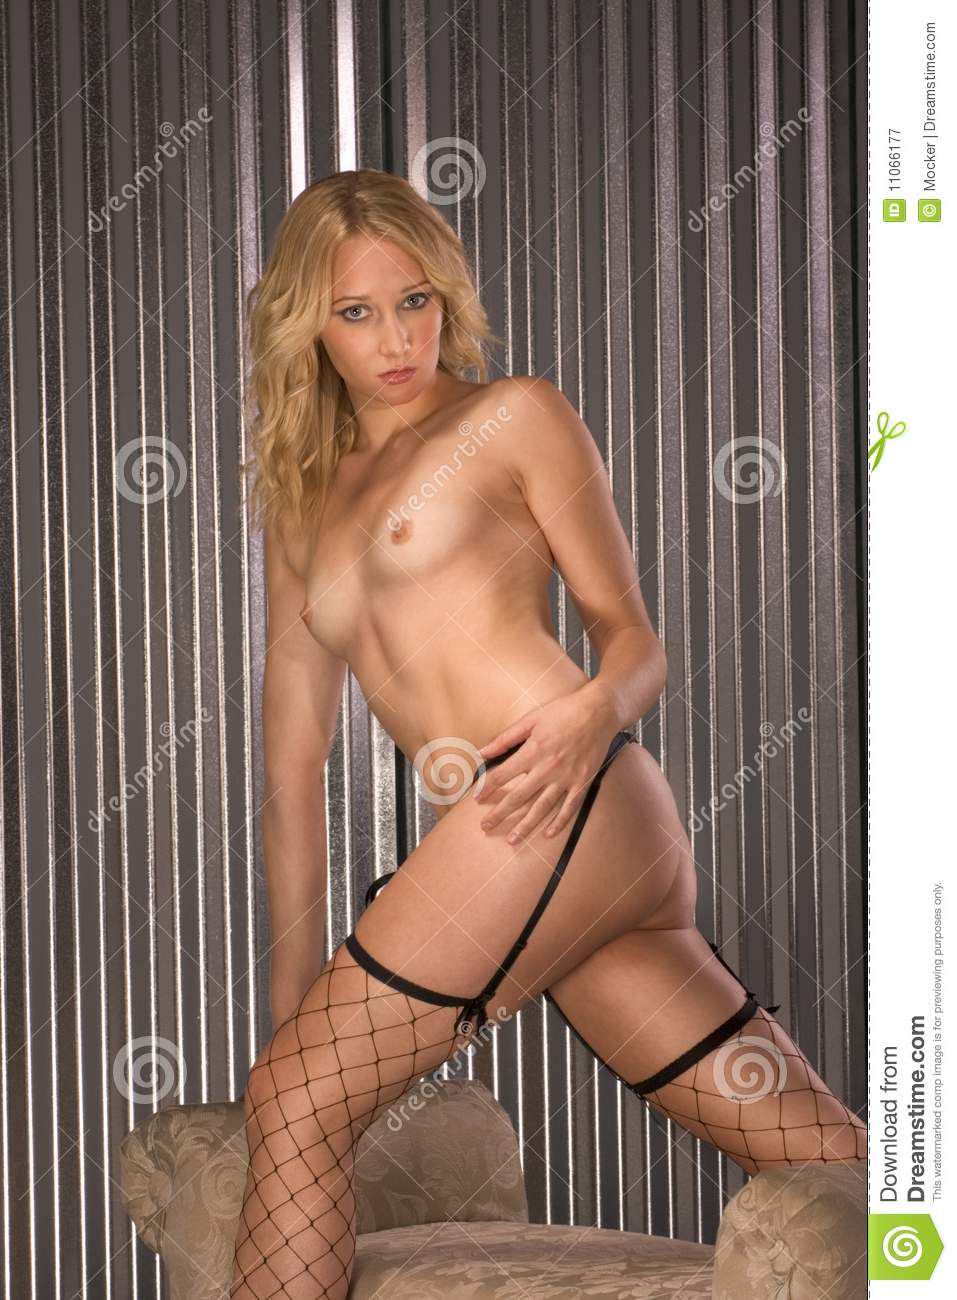 Sexy young stripper